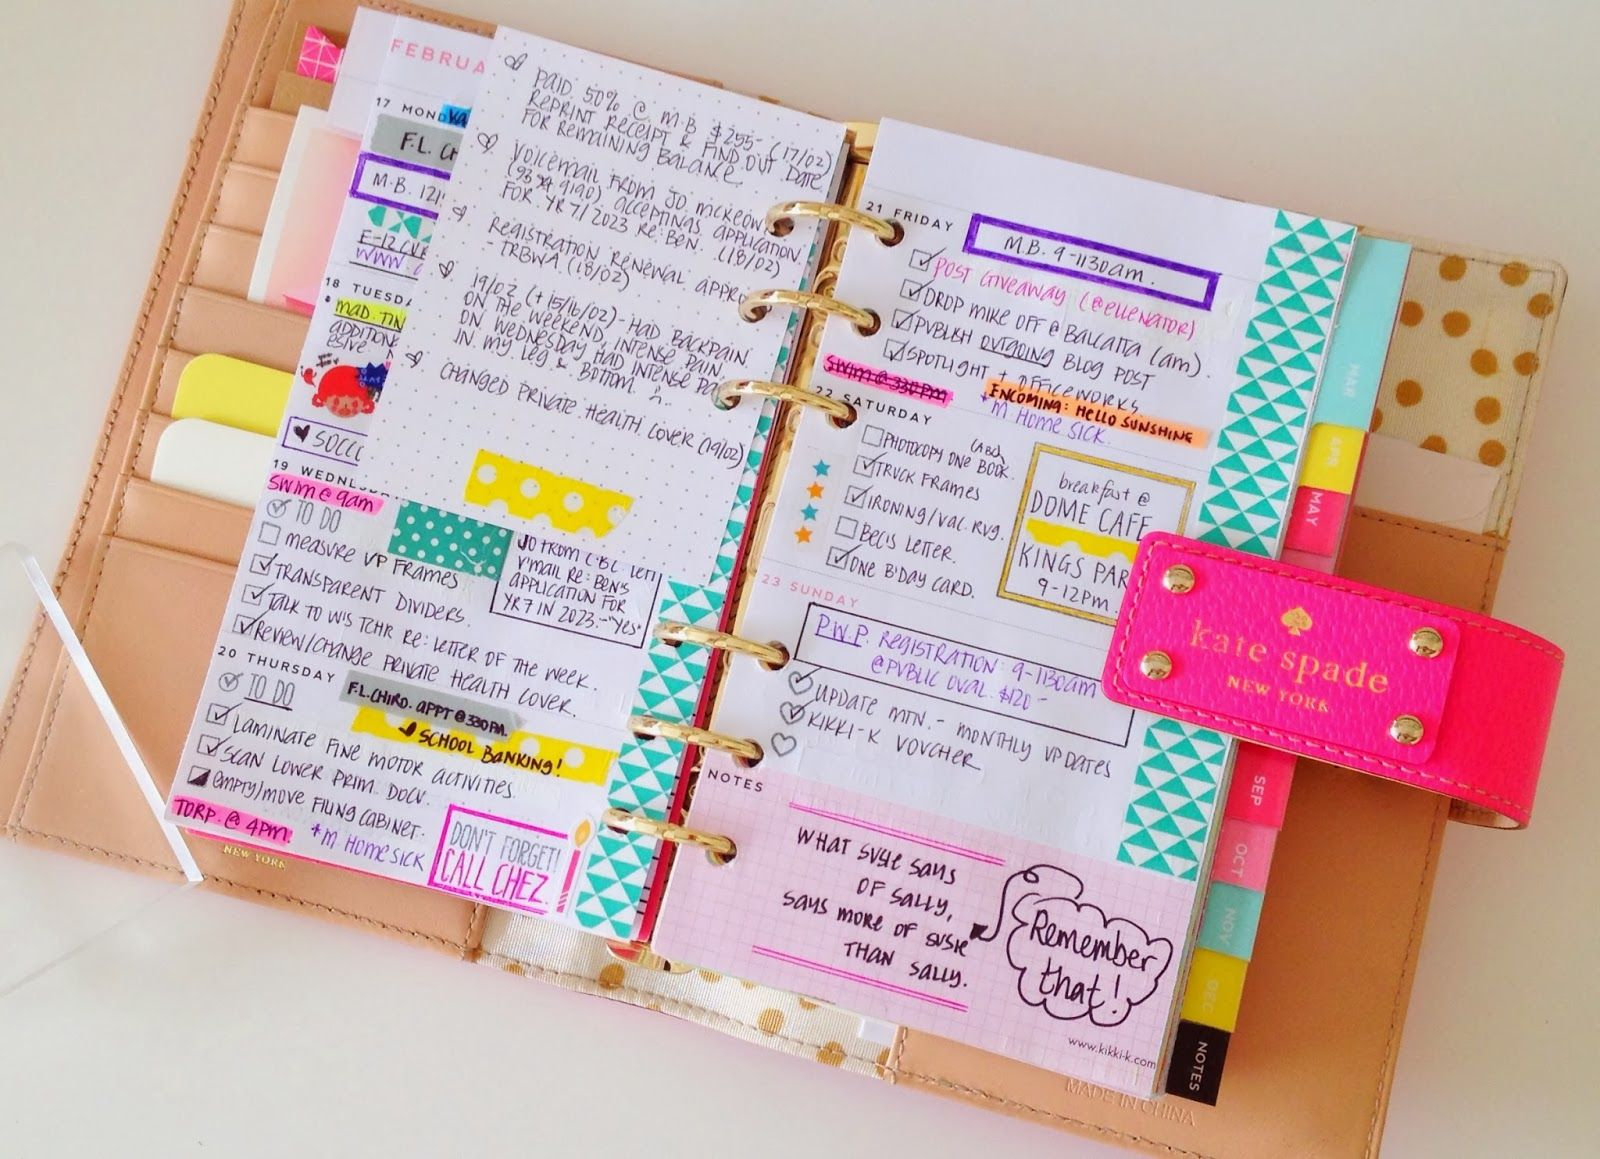 17 Best images about Agenda Books on Pinterest | Anniversaries ...